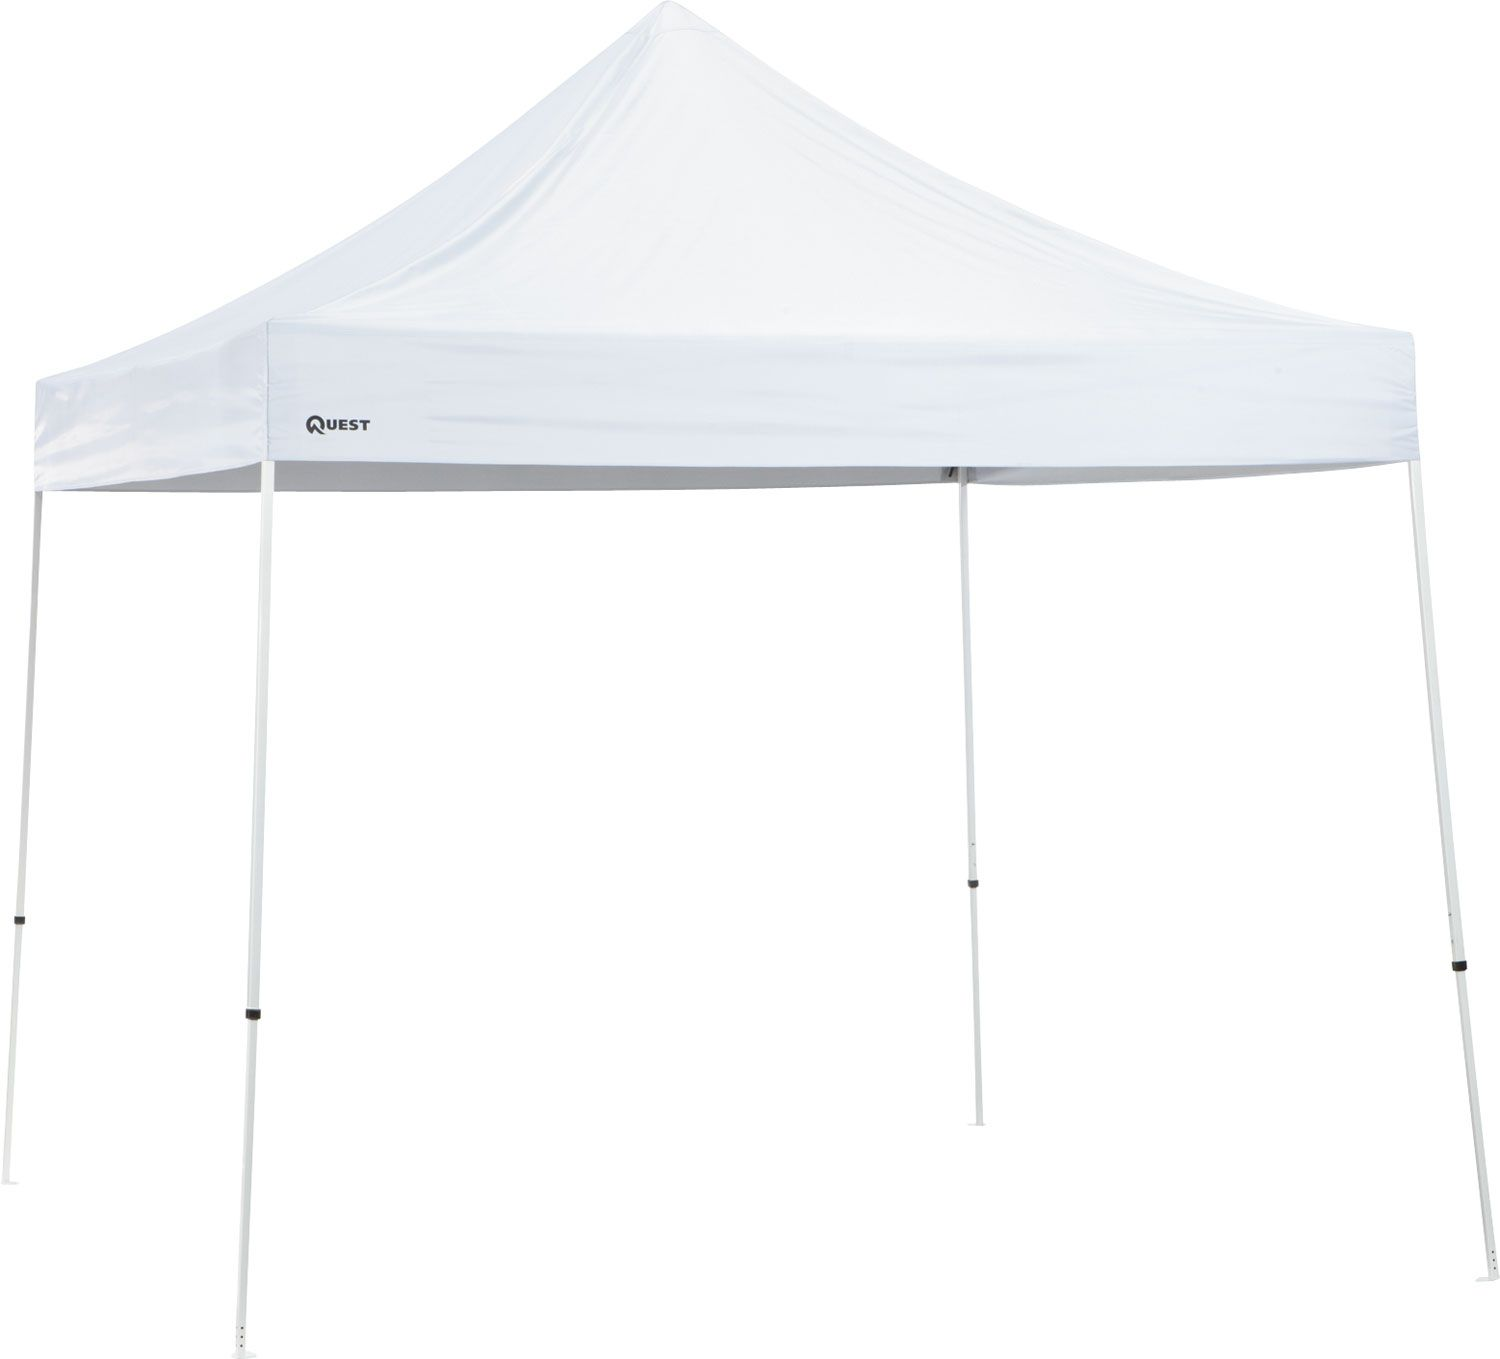 Quest 10 FT x 10 FT Commercial Canopy  sc 1 st  DICKu0027S Sporting Goods & Quest 10 FT x 10 FT Commercial Canopy | DICKu0027S Sporting Goods